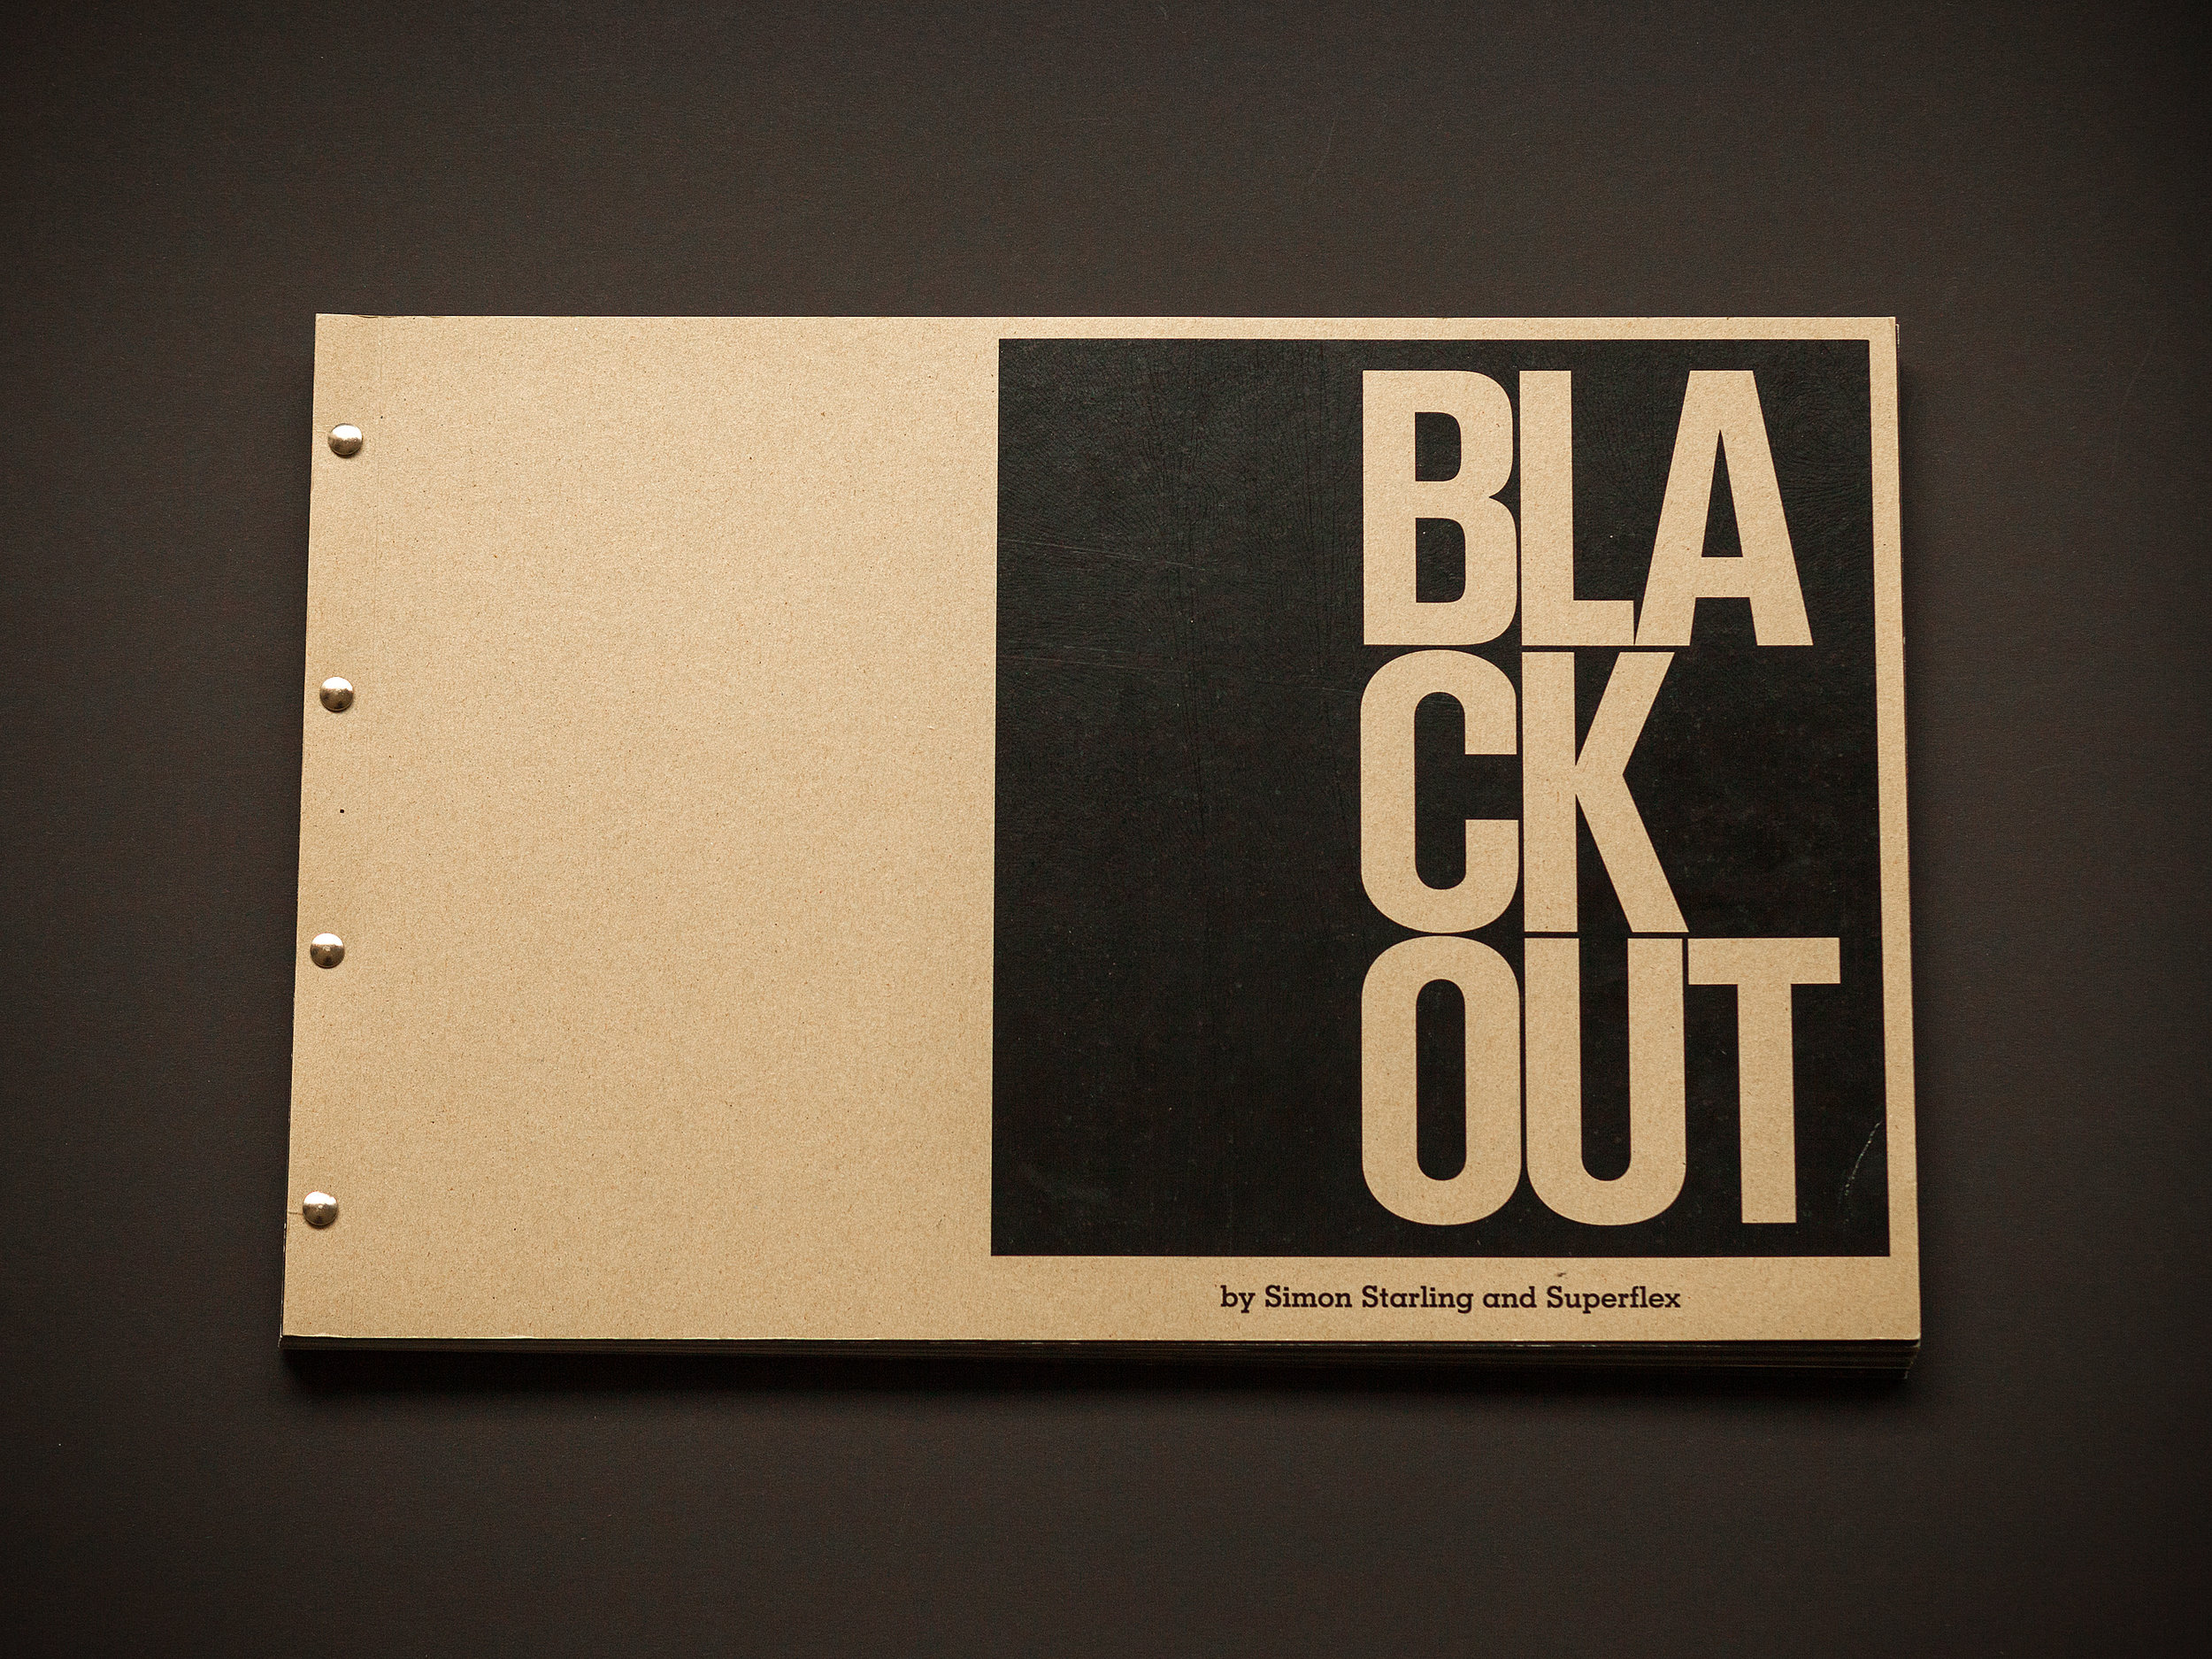 Blackout by Simon Starling and Superflex — Bladr